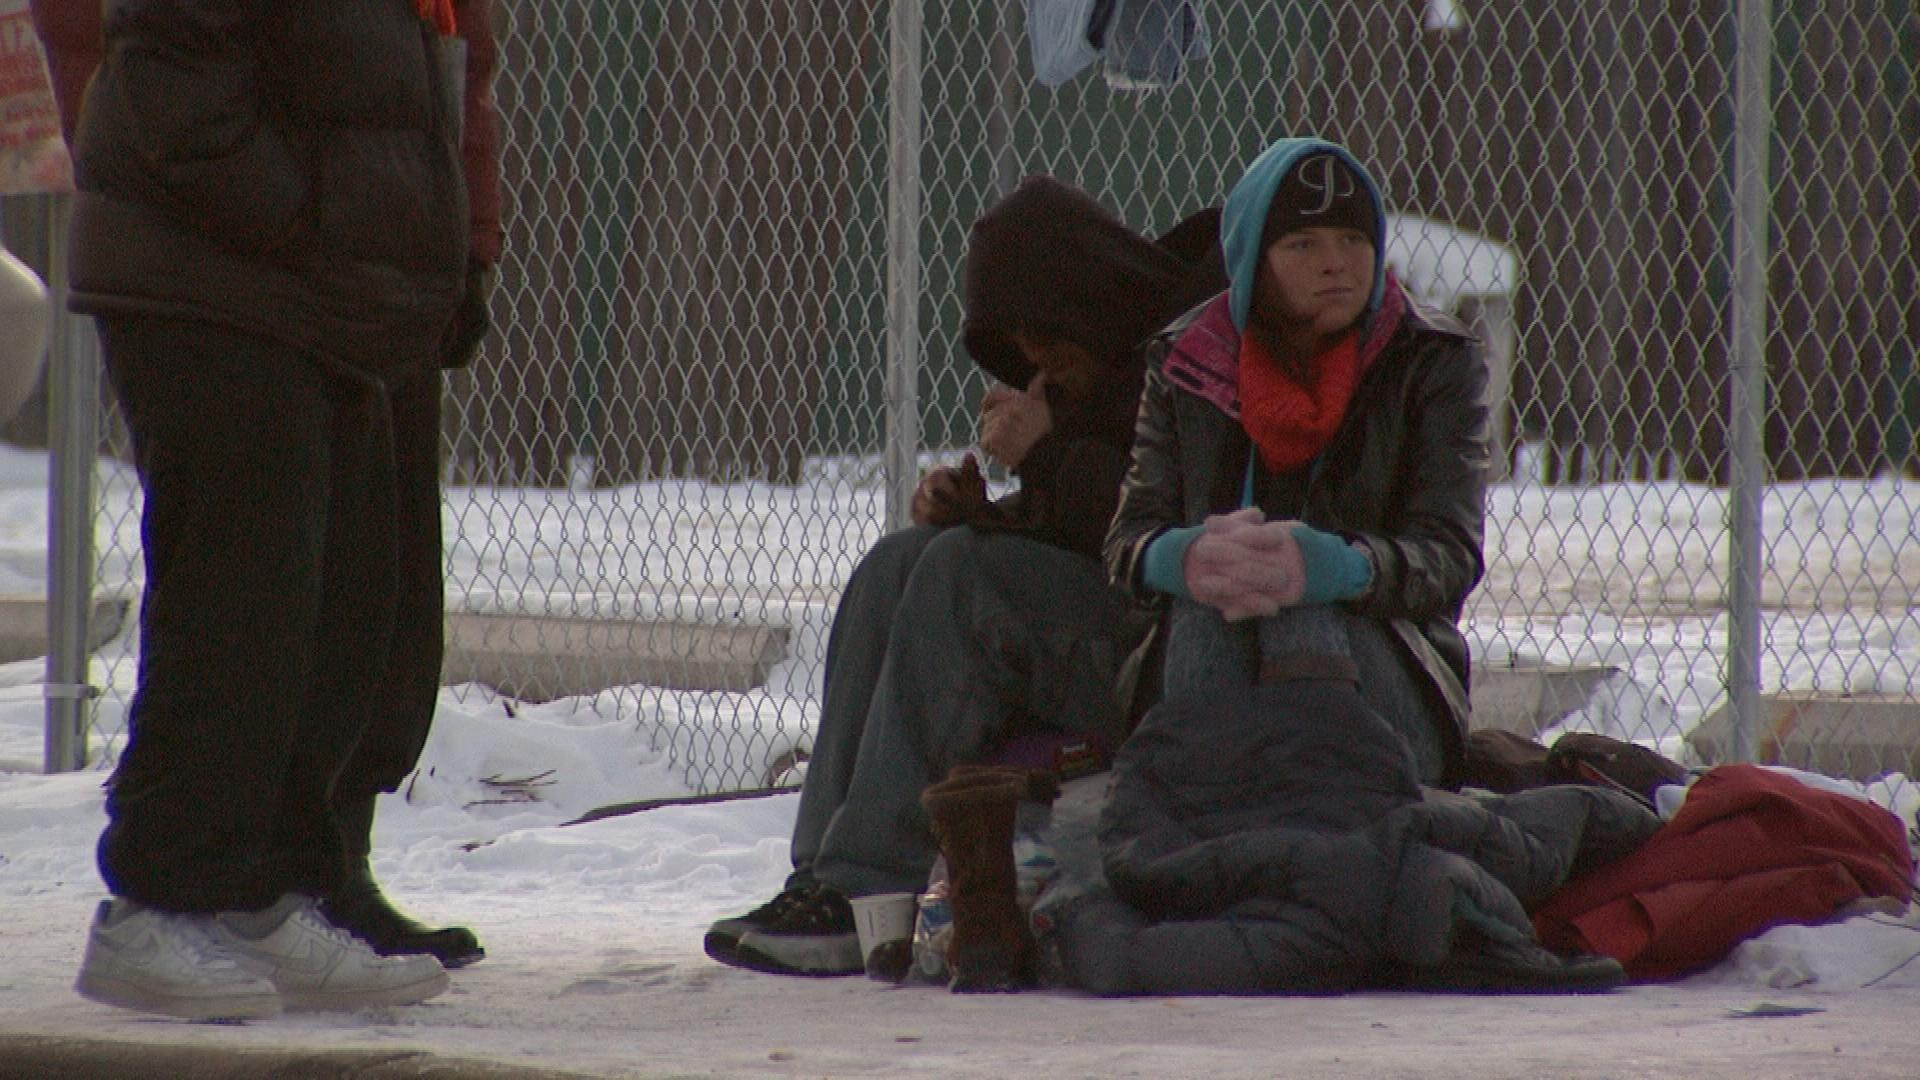 Homeless people outside the Denver Rescue Mission (credit: CBS)